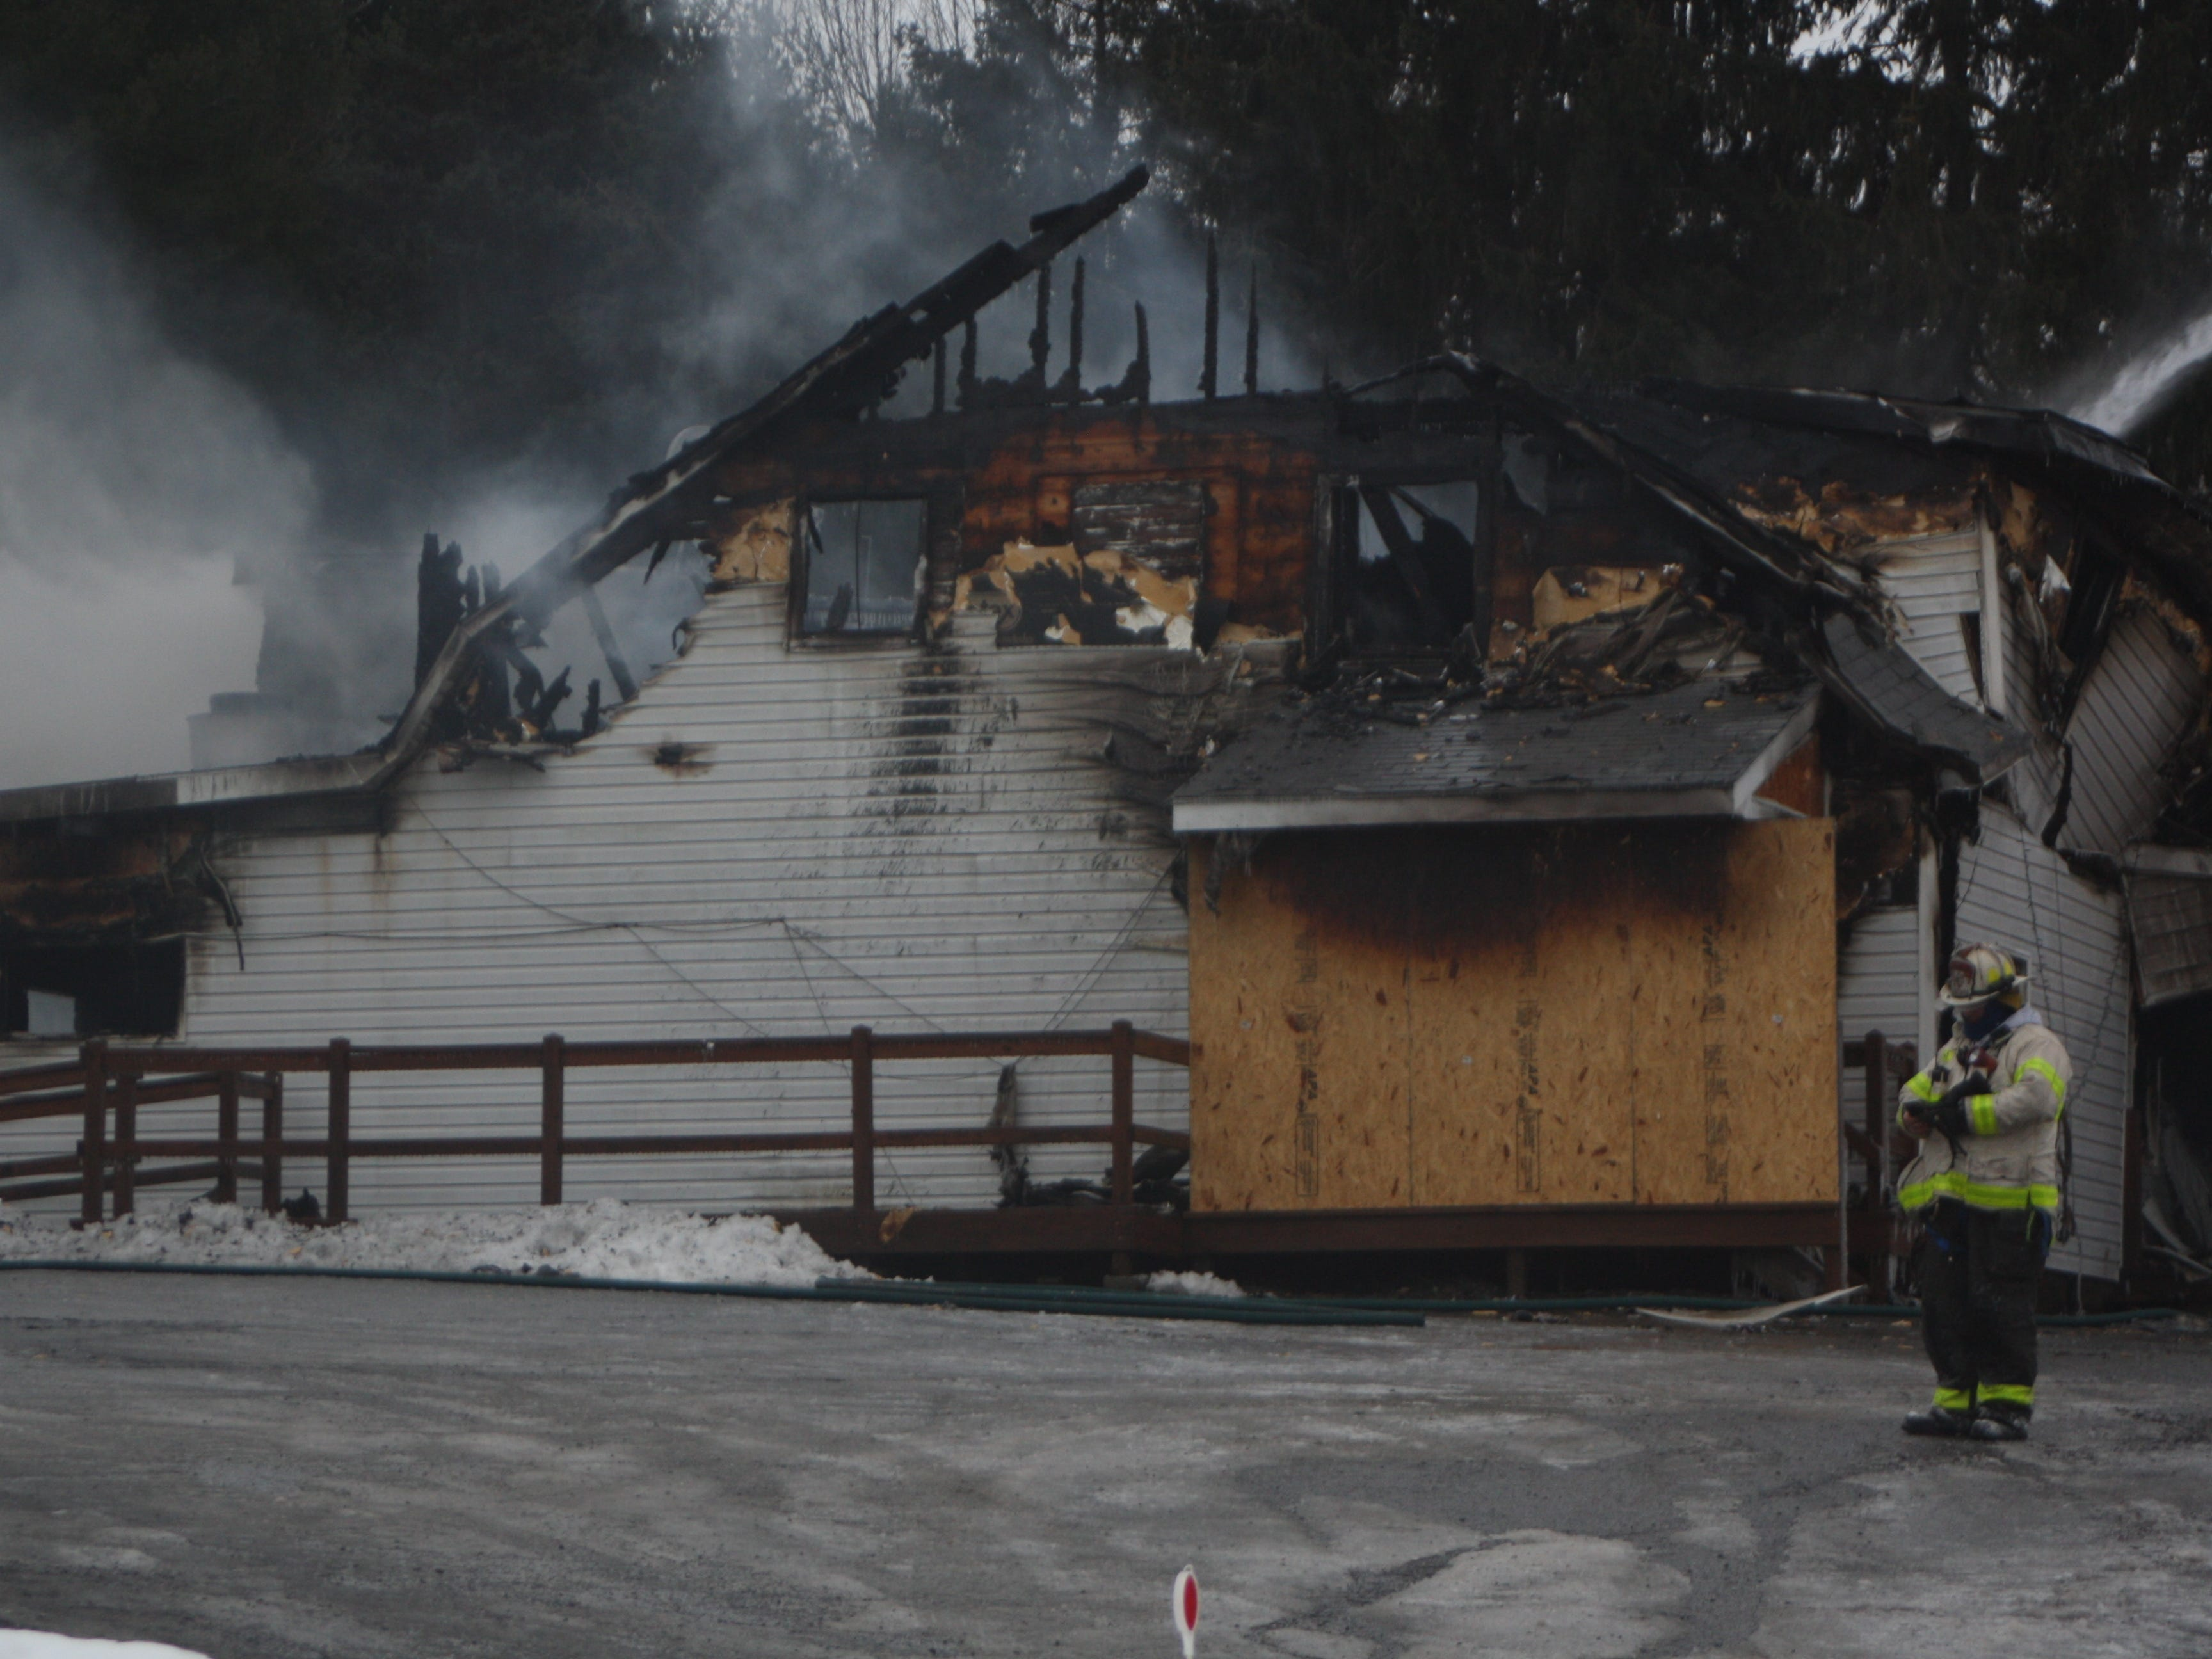 The Airport Inn, located on Airport Road in the Town of Maine, was determined a total loss after a fire ravaged the building early on Jan. 29.